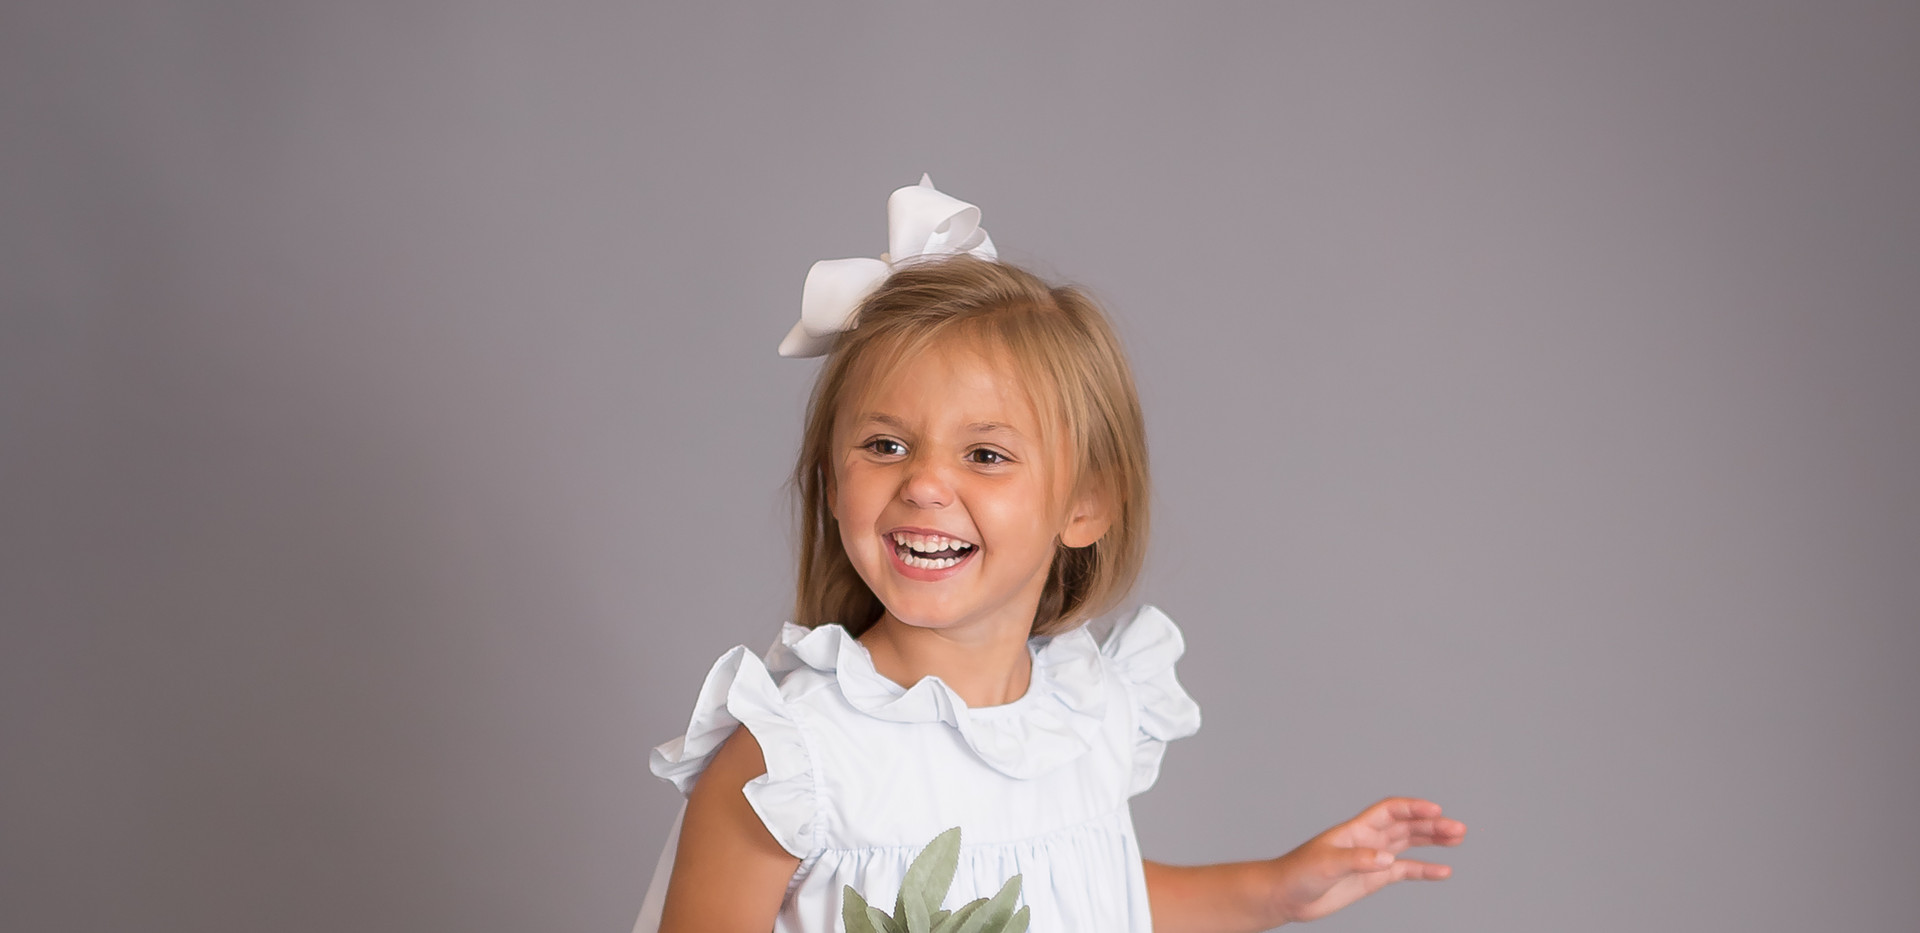 girl laughing with flowers, Chattanooga photographer